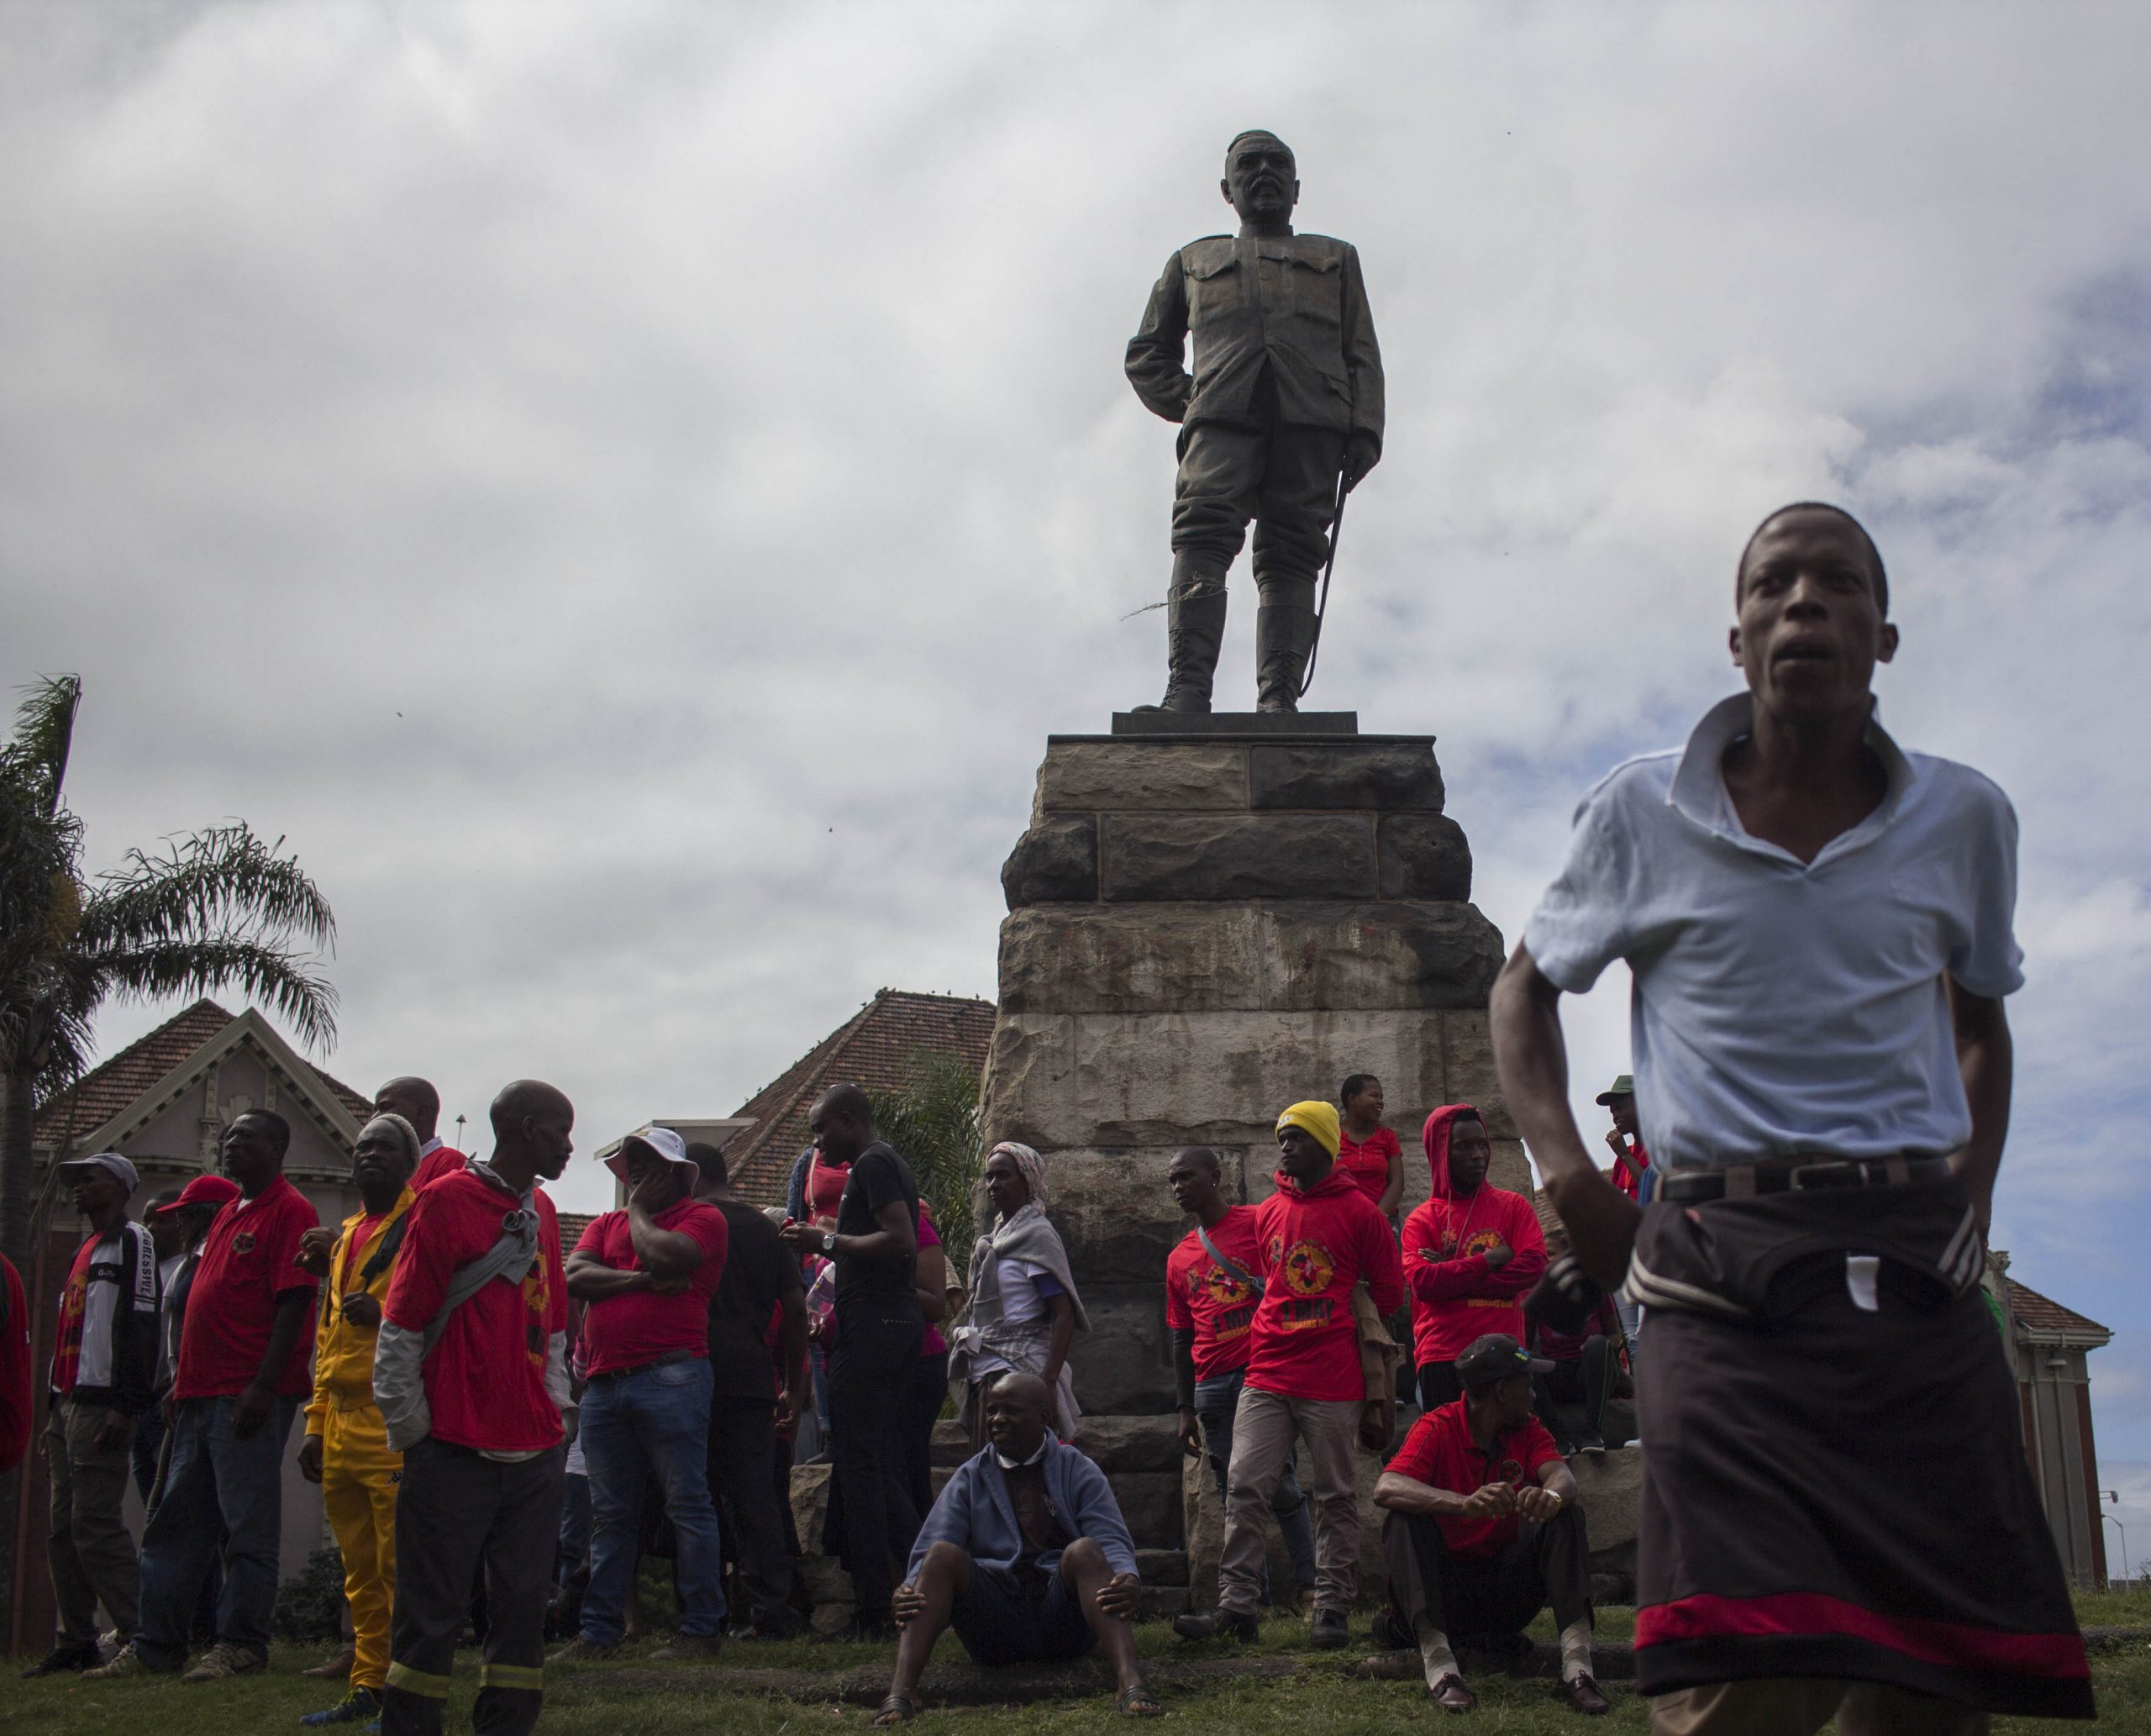 24 February 2020: A statue of Louis Botha, first prime minister of the Union of South Africa, towers over supporters of Abahlali baseMjondolo as they gather before the march.